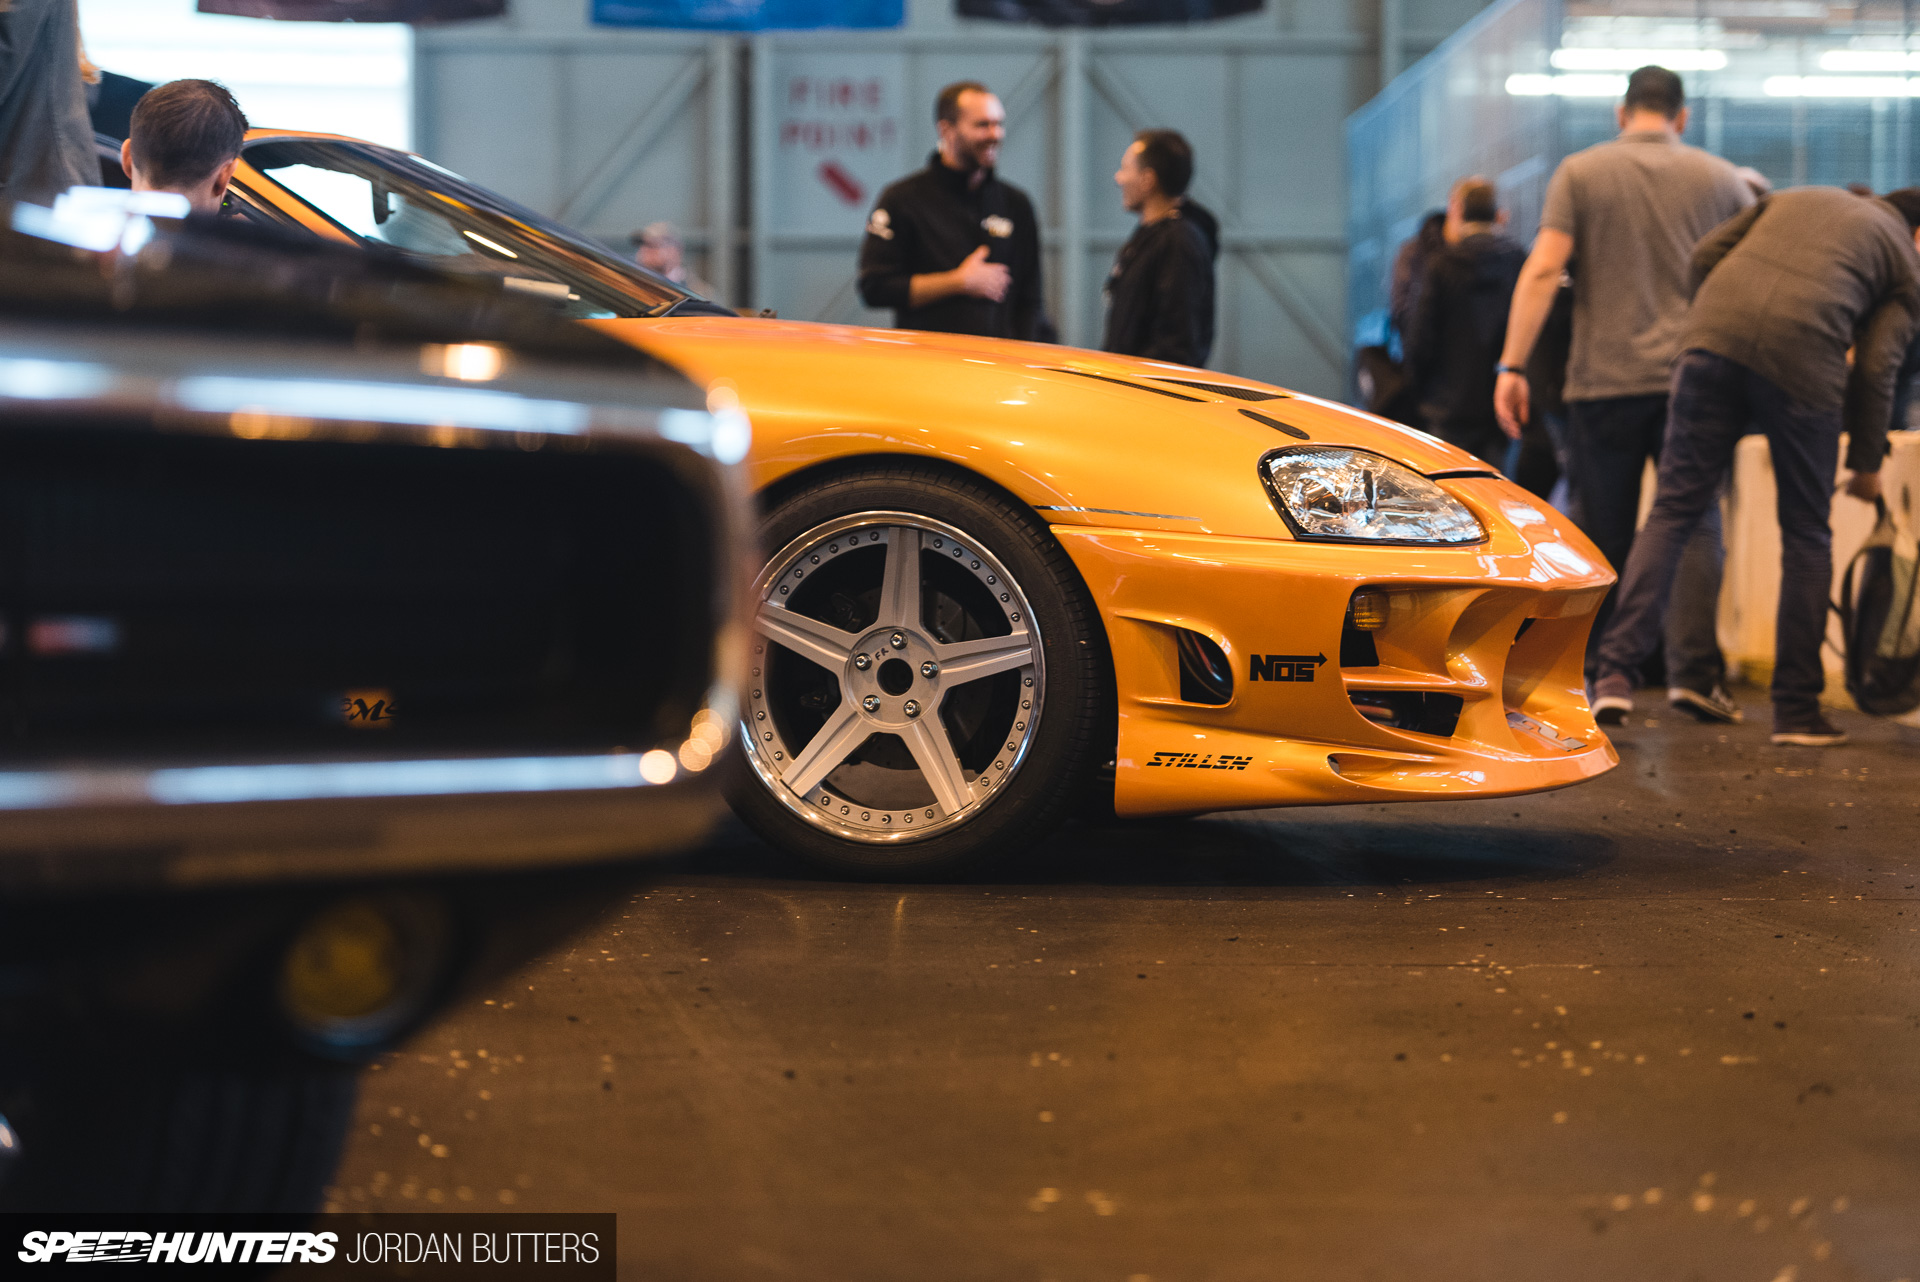 Mitsubishi Eclipse Souped Up >> The Making Of Fast & Furious Live - Speedhunters